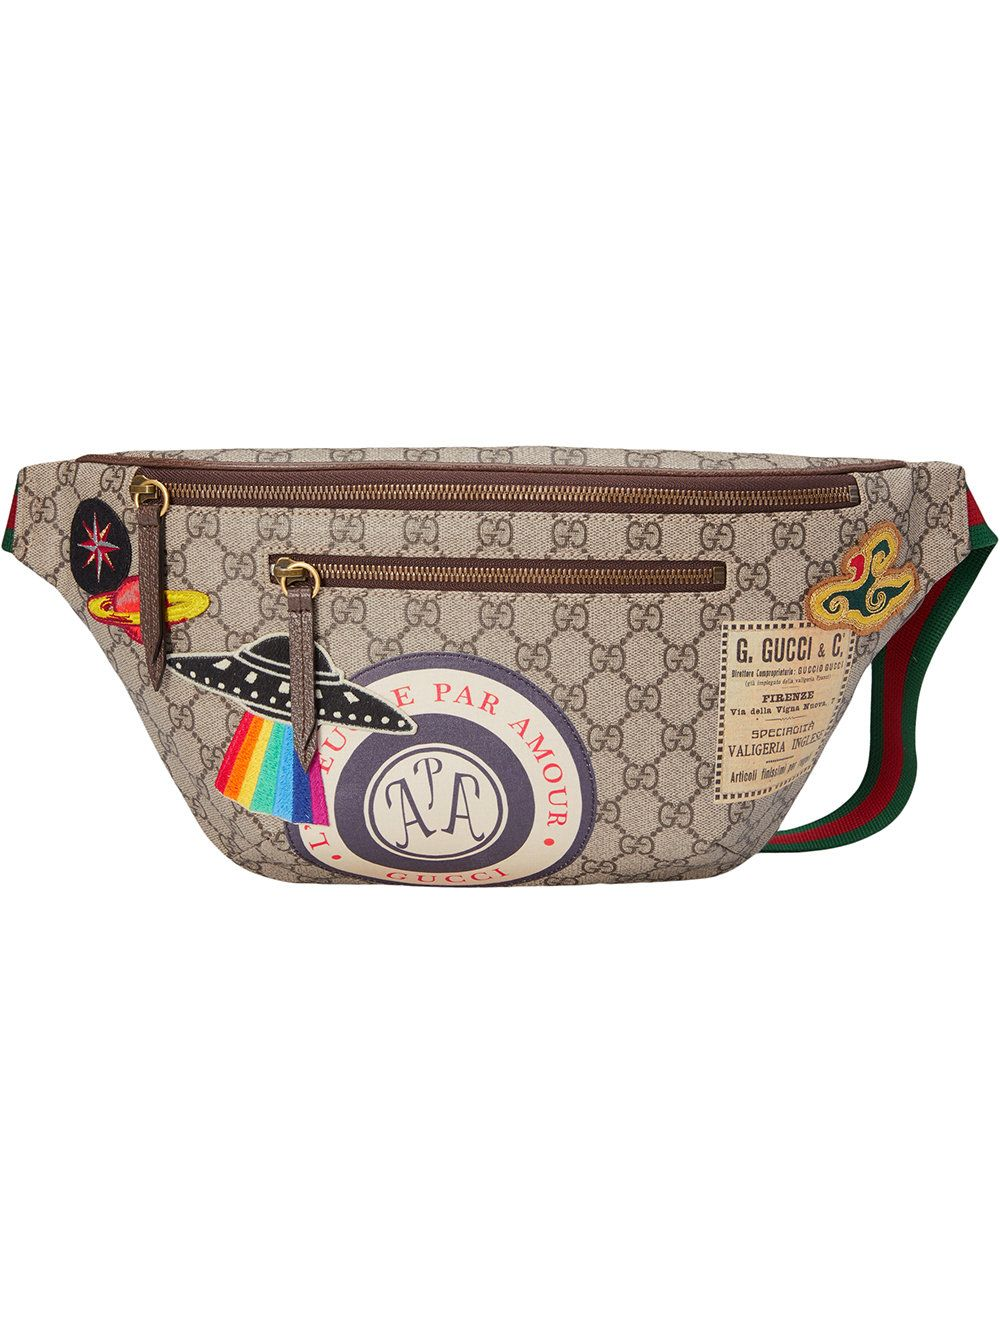 Gucci Gucci Courrier GG Supreme belt bag  33f79ec5895